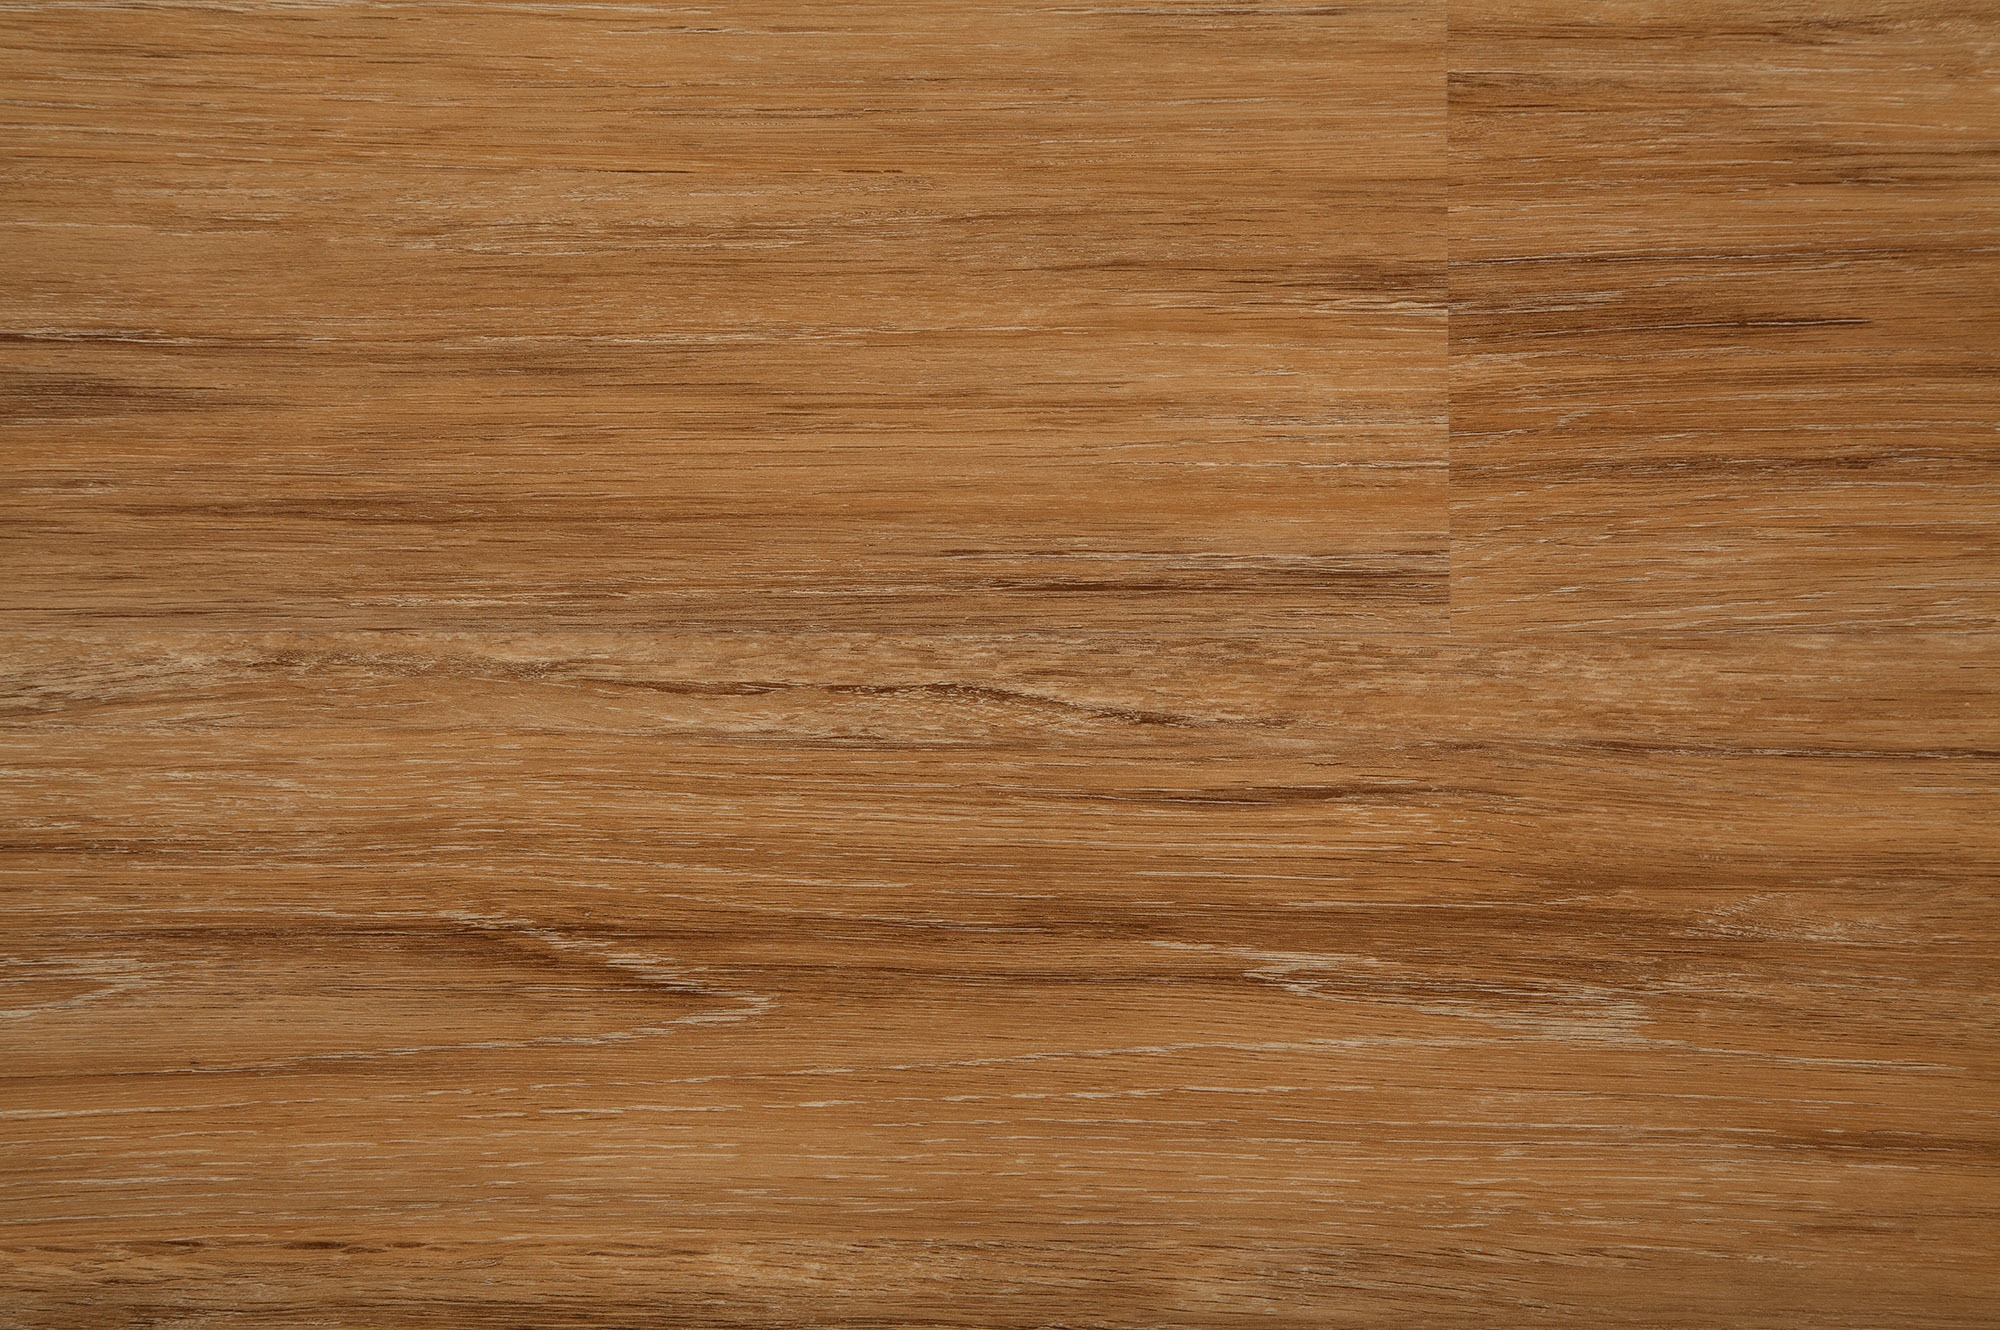 Ovio vinyl planks pvc click lock country for Country home collections flooring